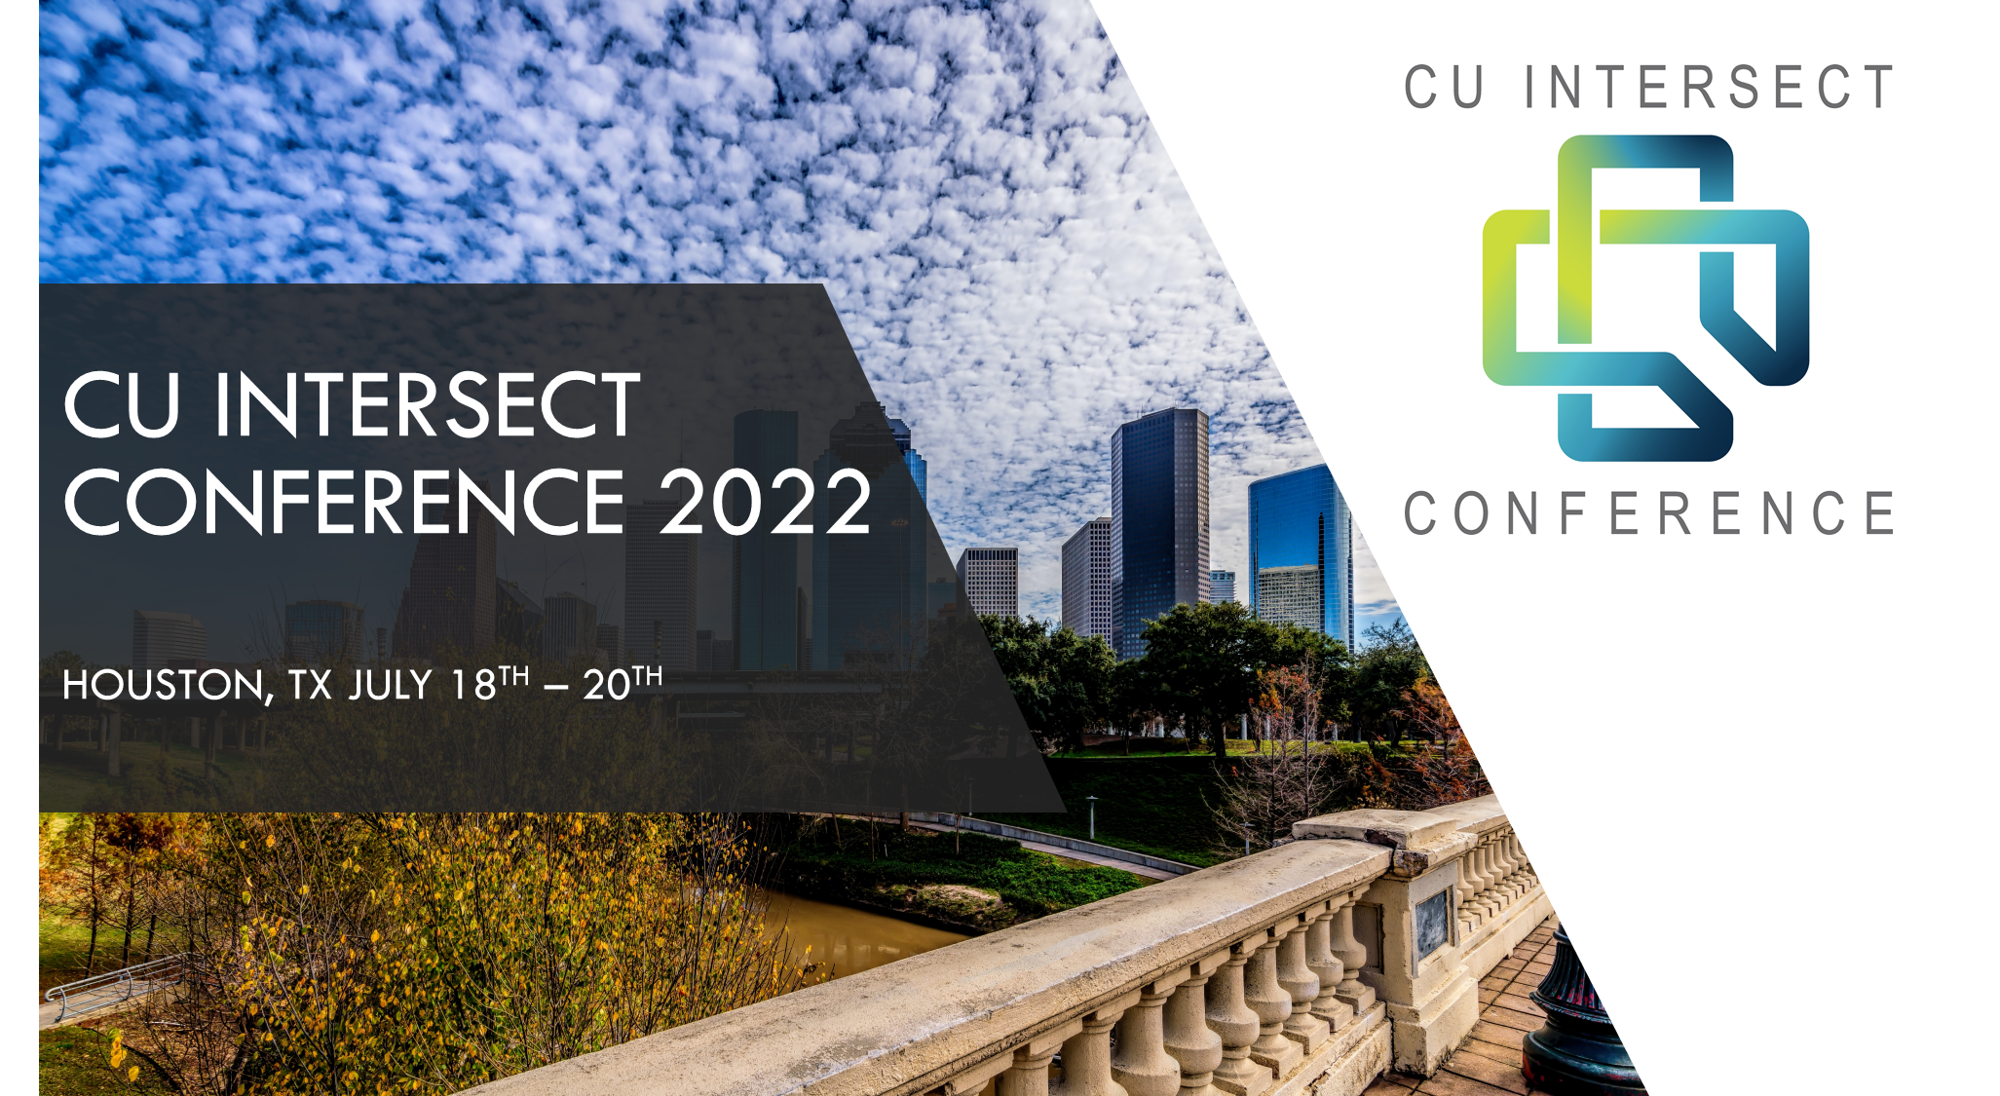 CU Intersect Conference